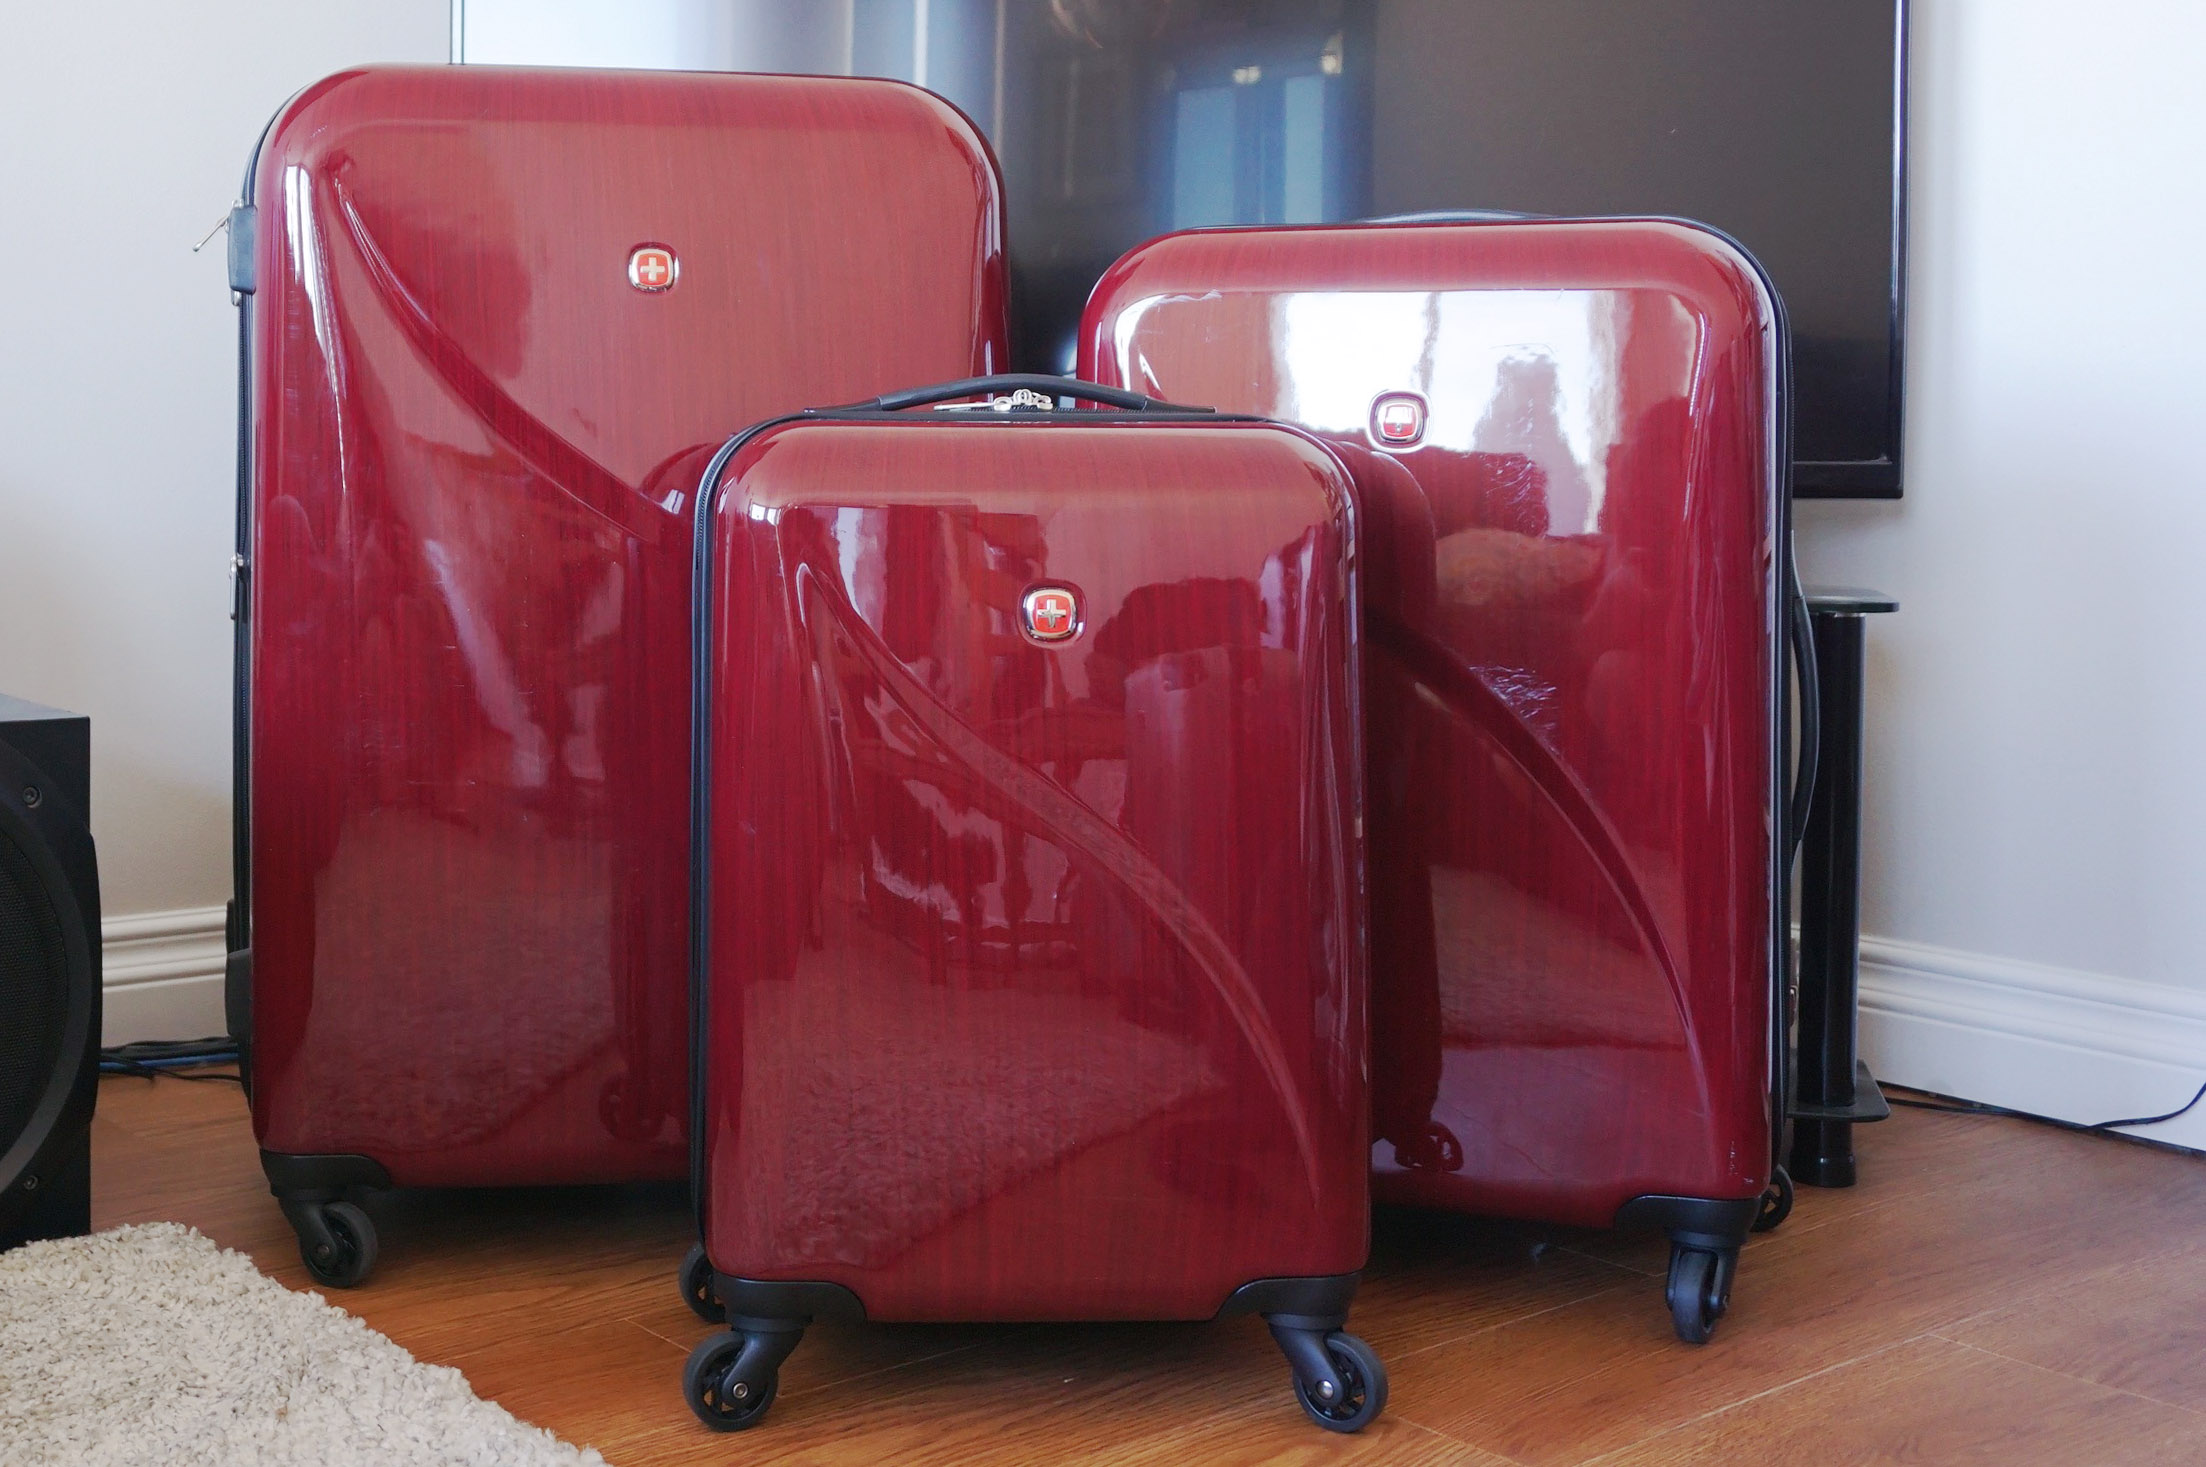 291d7fdf4 Should you buy a 2 piece or 3 piece luggage set? | Best Buy Blog